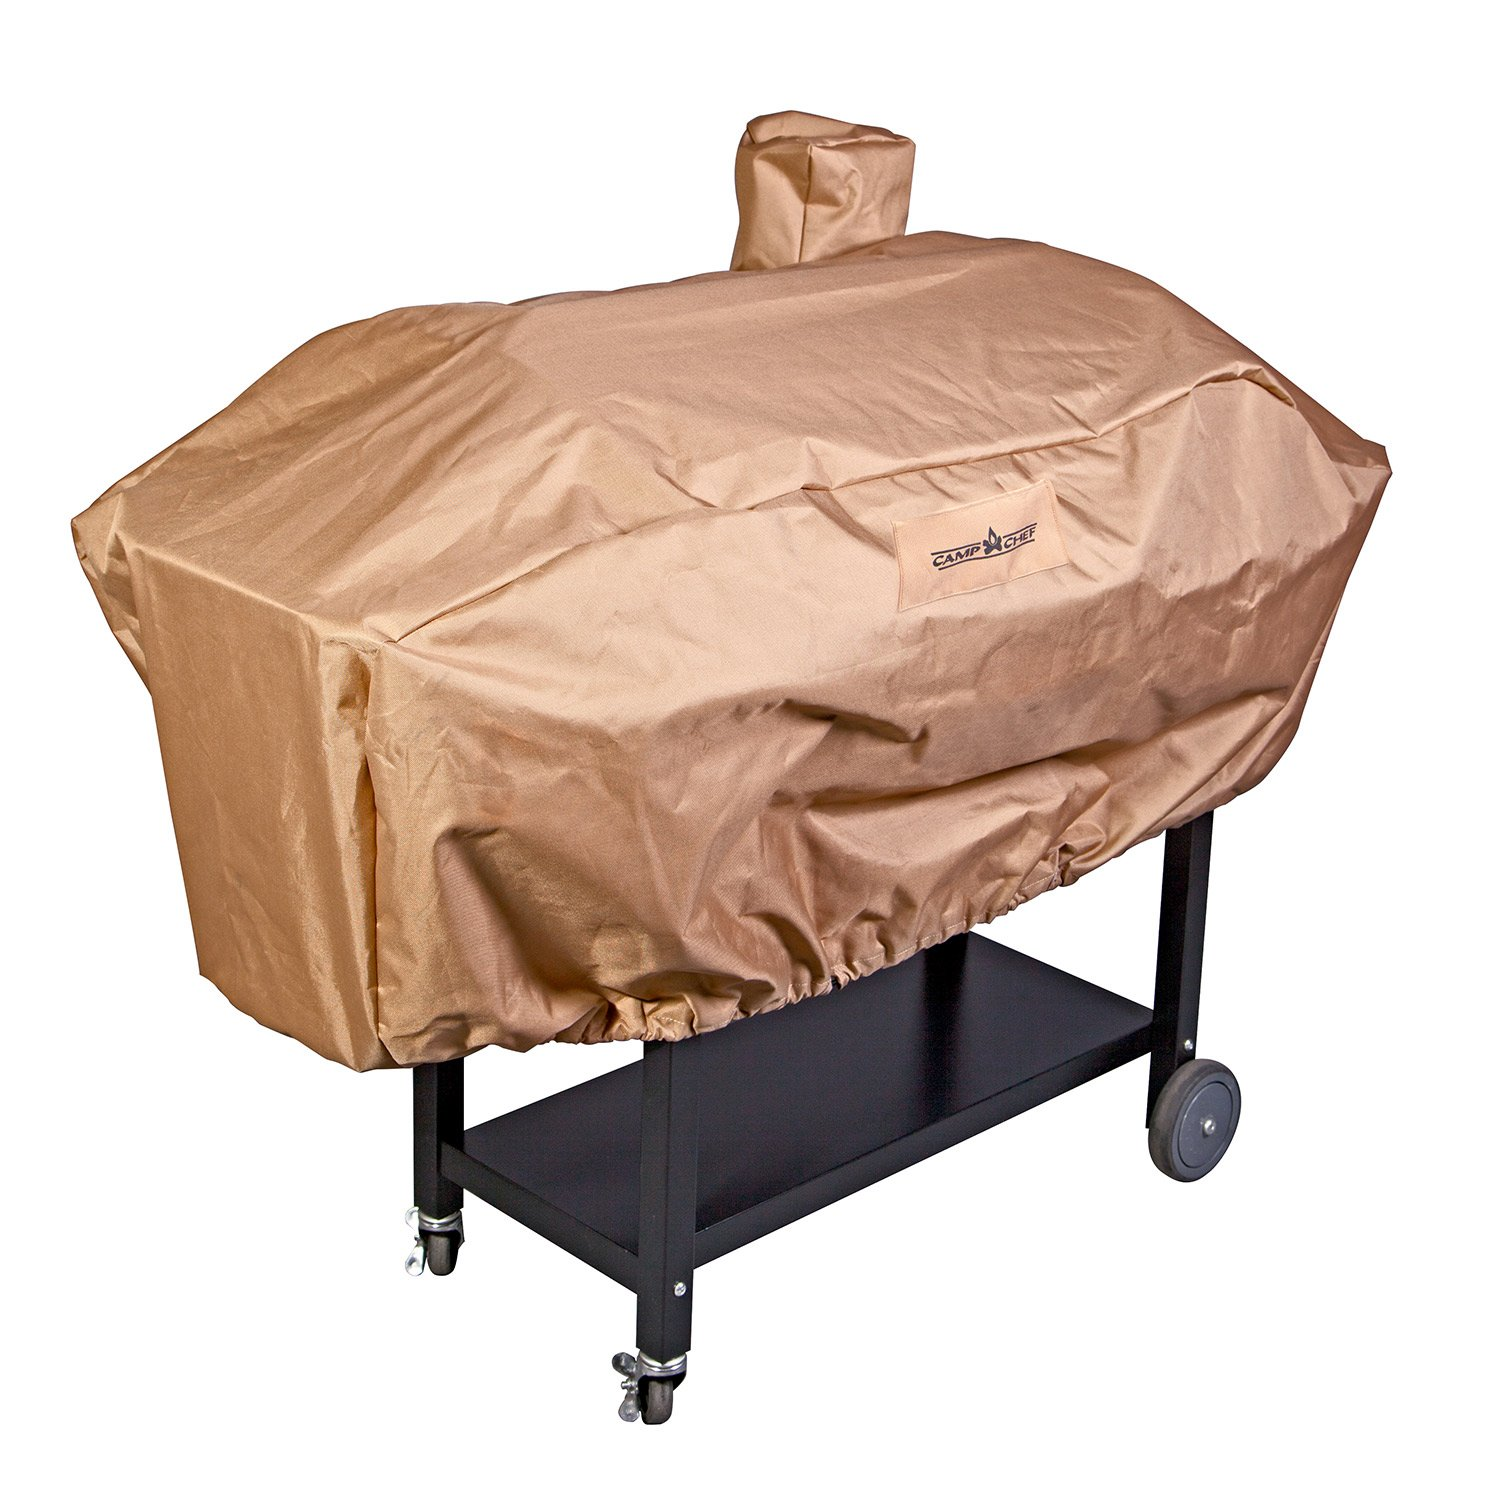 SmokePro Pellet Grill Patio cover (Fits 36 Pellet Grills) Camp Chef